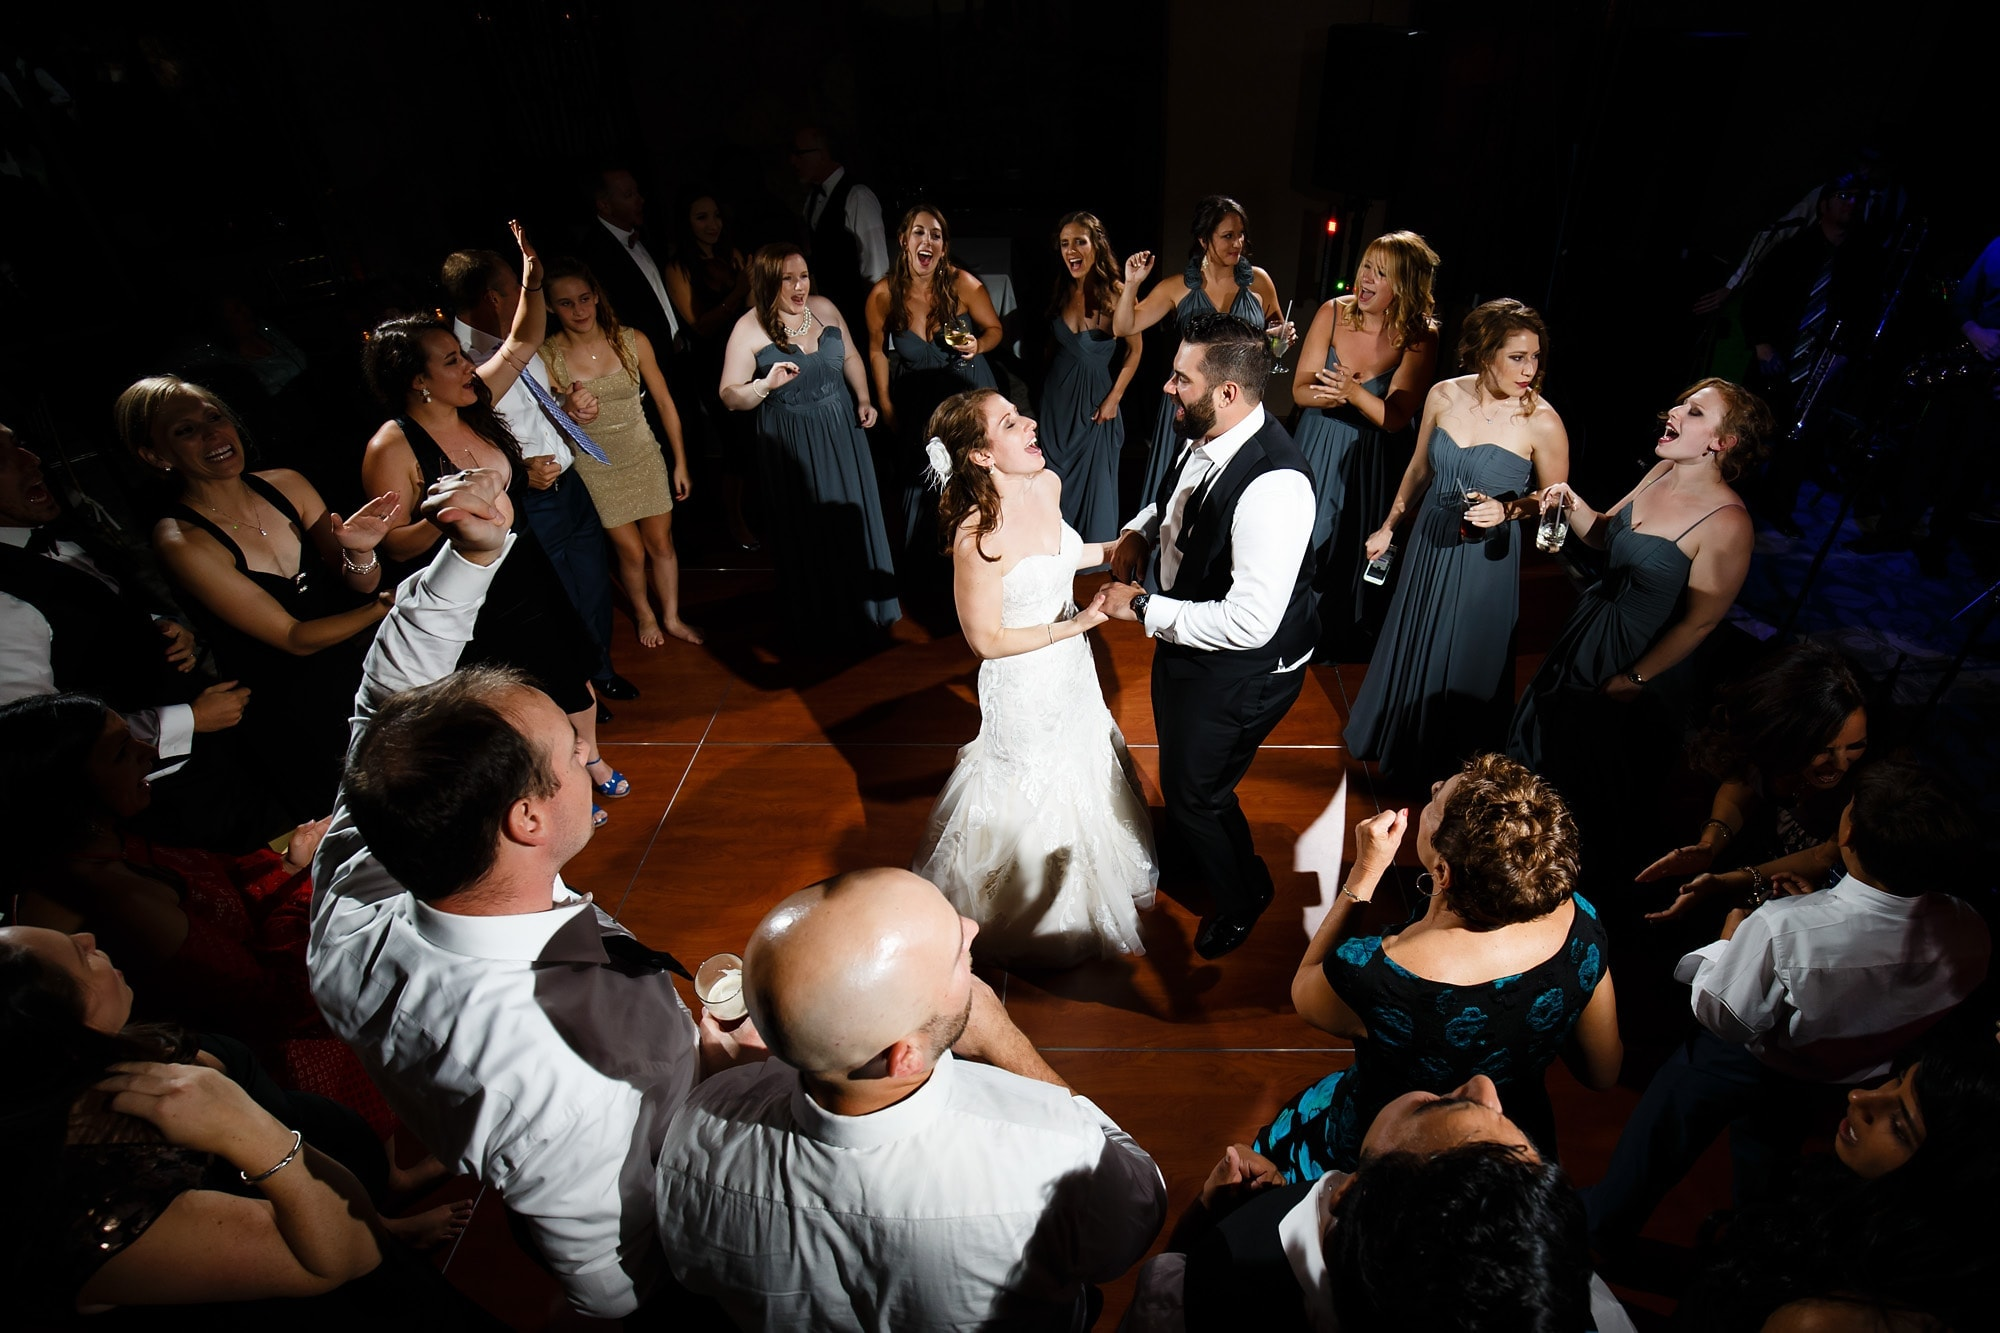 The bride and groom dance with all their friends and family during their wedding reception at Garden of the Gods Club